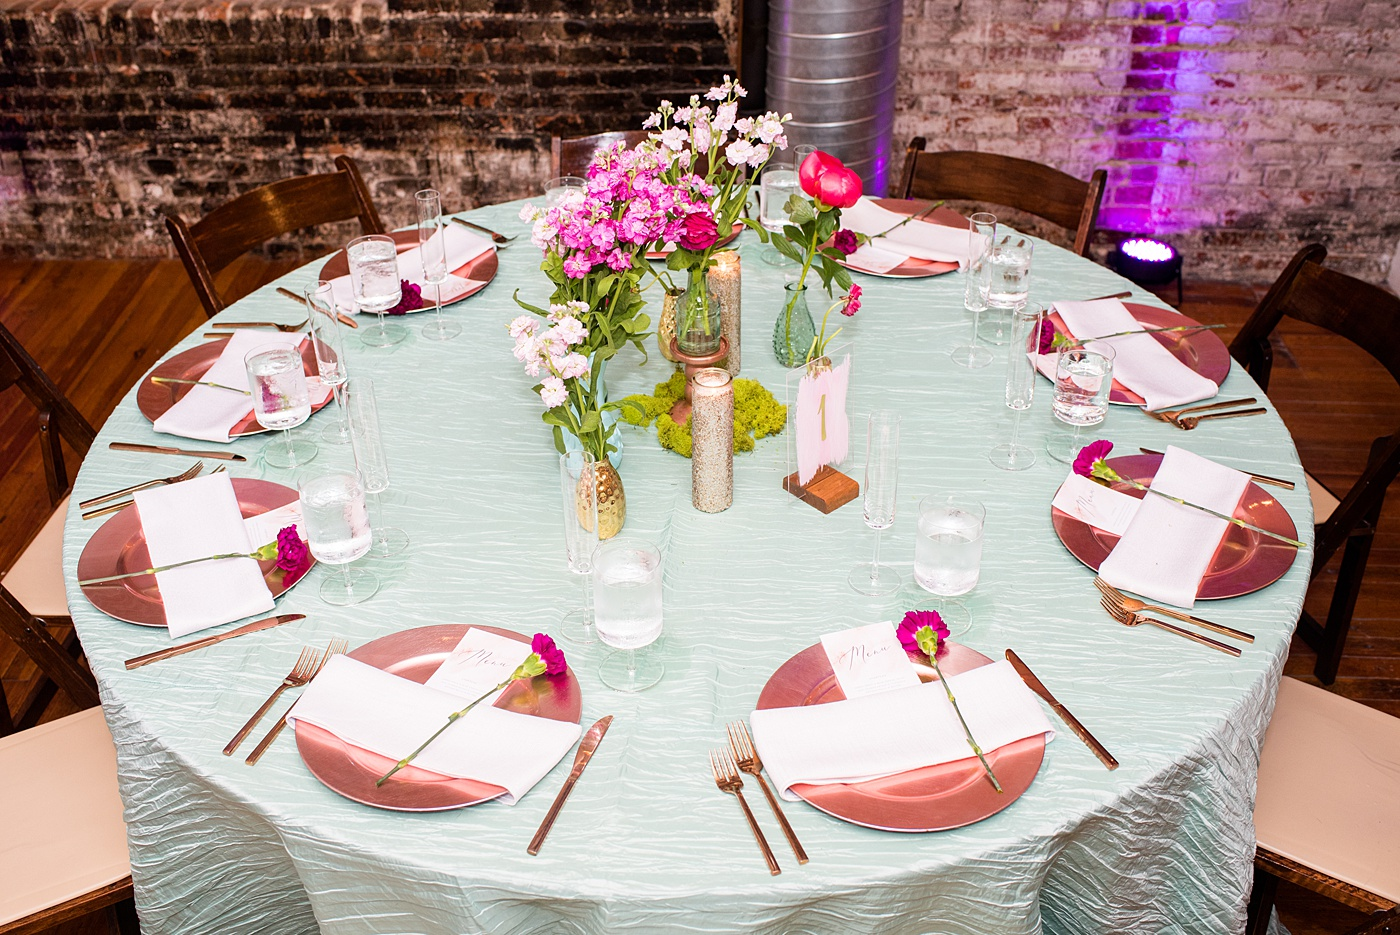 A beautiful spring wedding in downtown Raleigh, North Carolina, at the event venue The Stockroom at 230. Mikkel Paige Photography, their photographer, captured inspiring reception pictures of their hot pink and aqua blue colors. #MikkelPaige #DowntownRaleigh #RaleighWedding #RaleighVenue #TheStockroomat230 #weddingreception